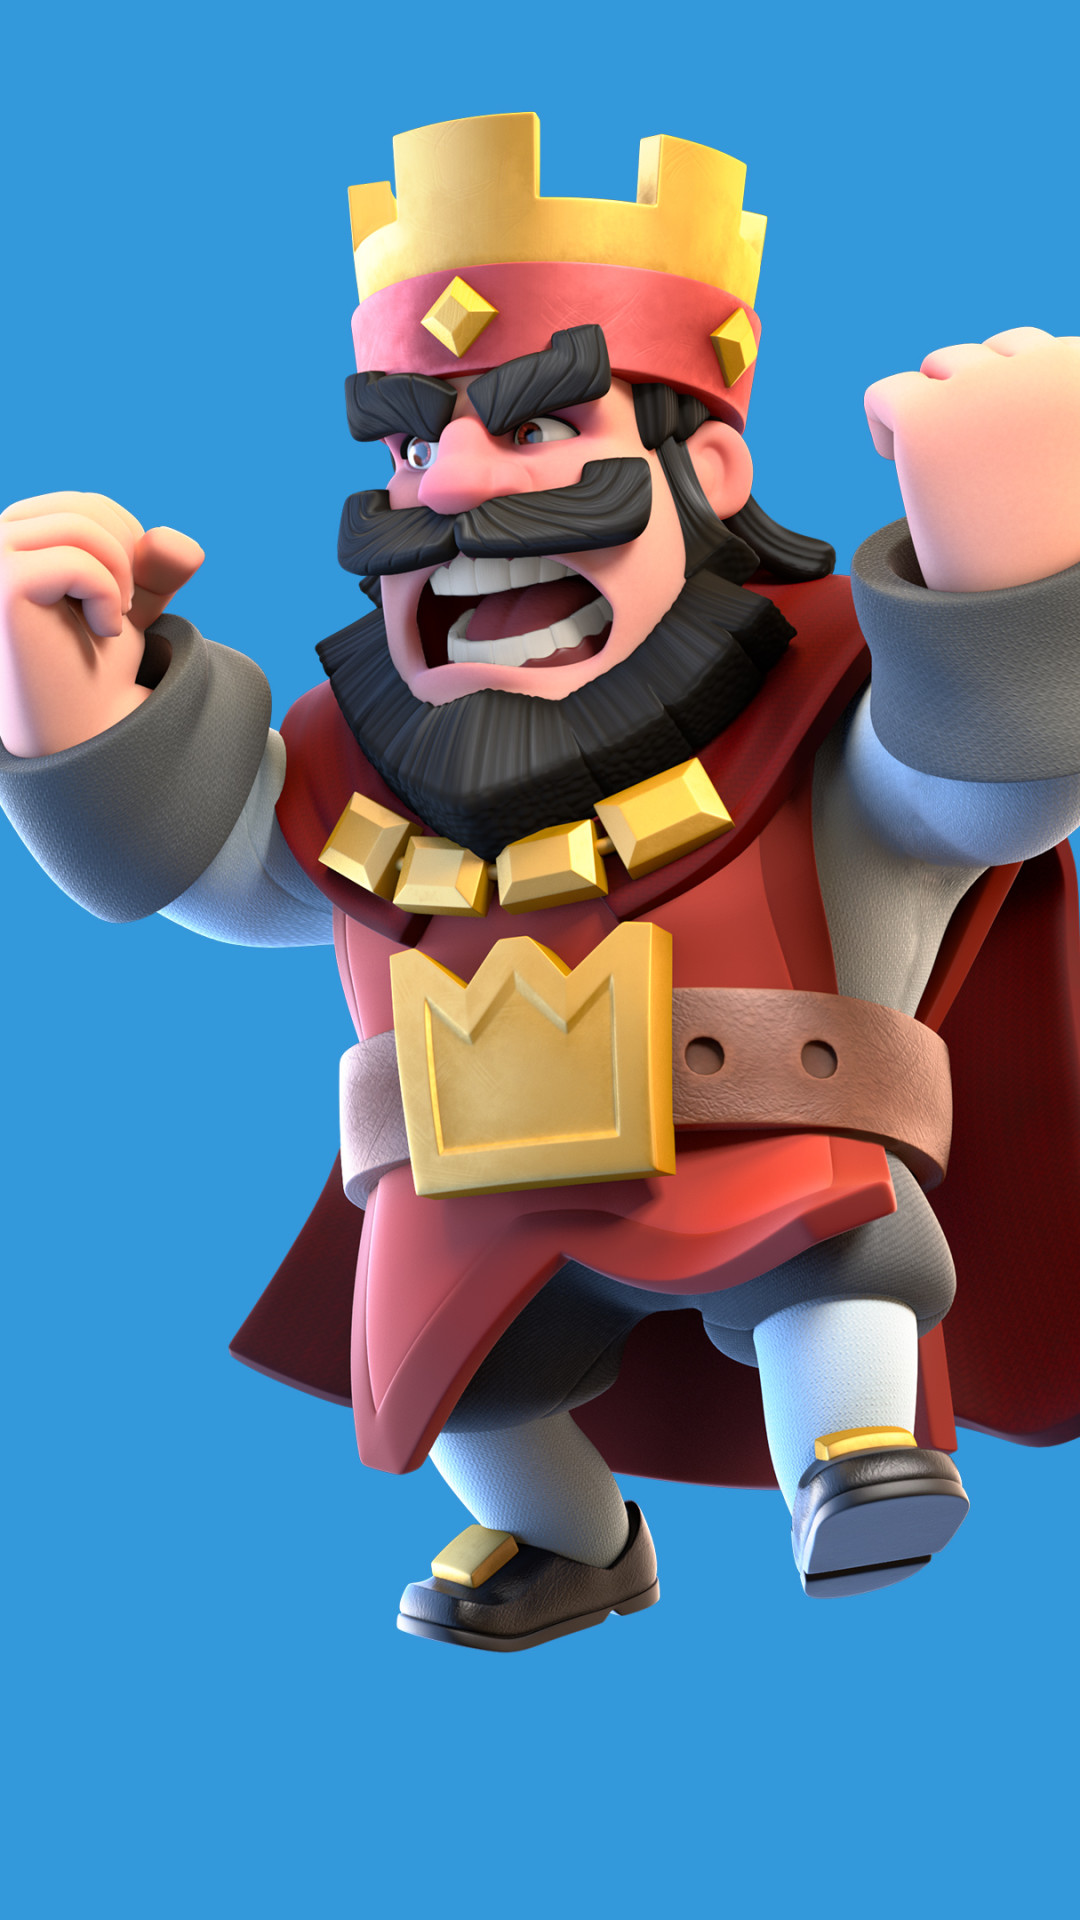 1080x1920 Video Game Clash Royale. Wallpaper 693833